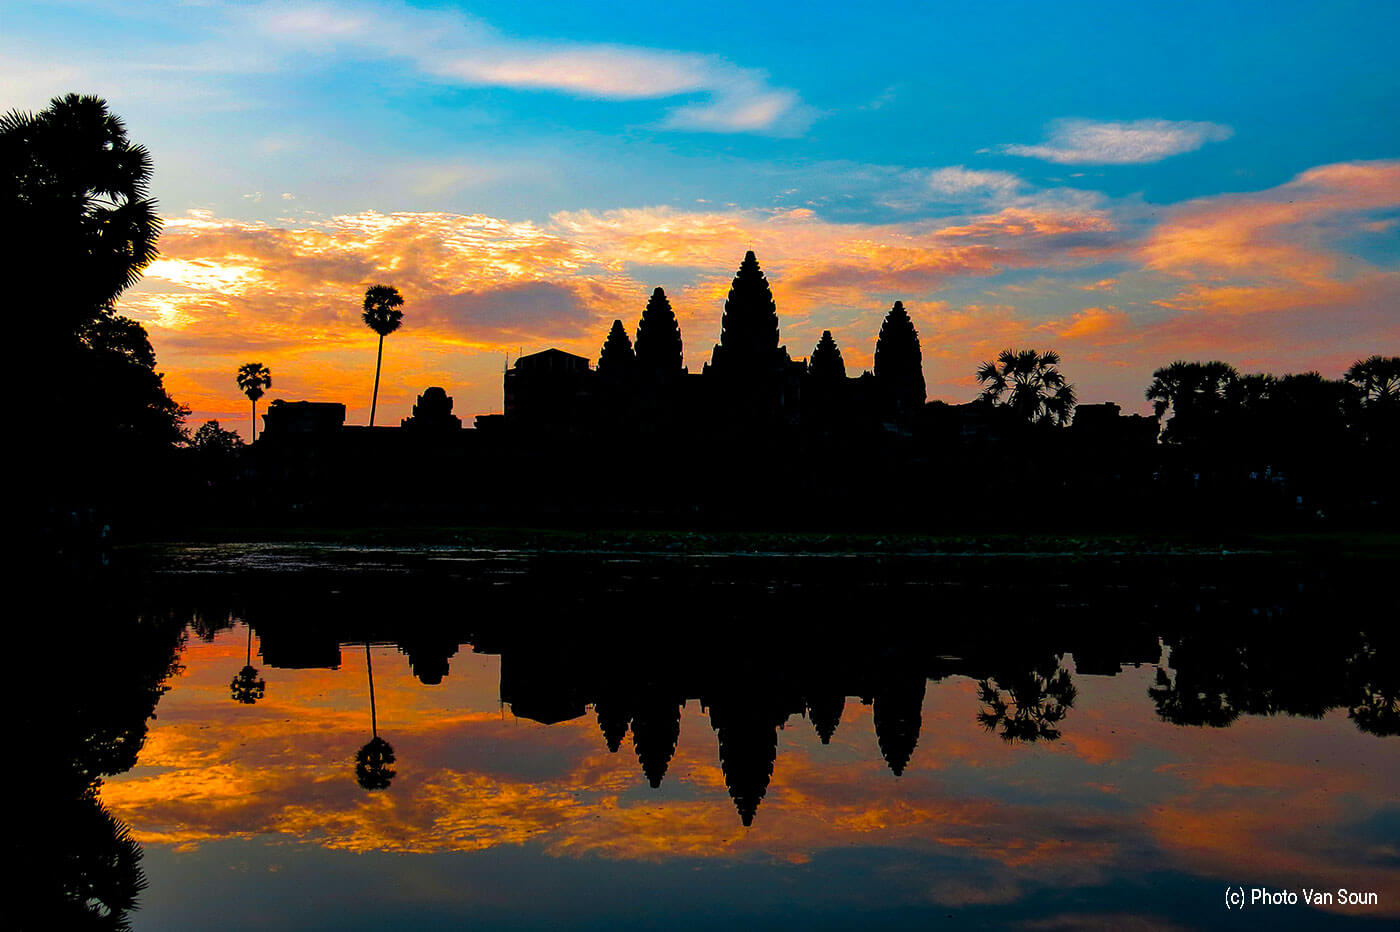 Sunrise Angkor Wat - Photo by: Van Soun